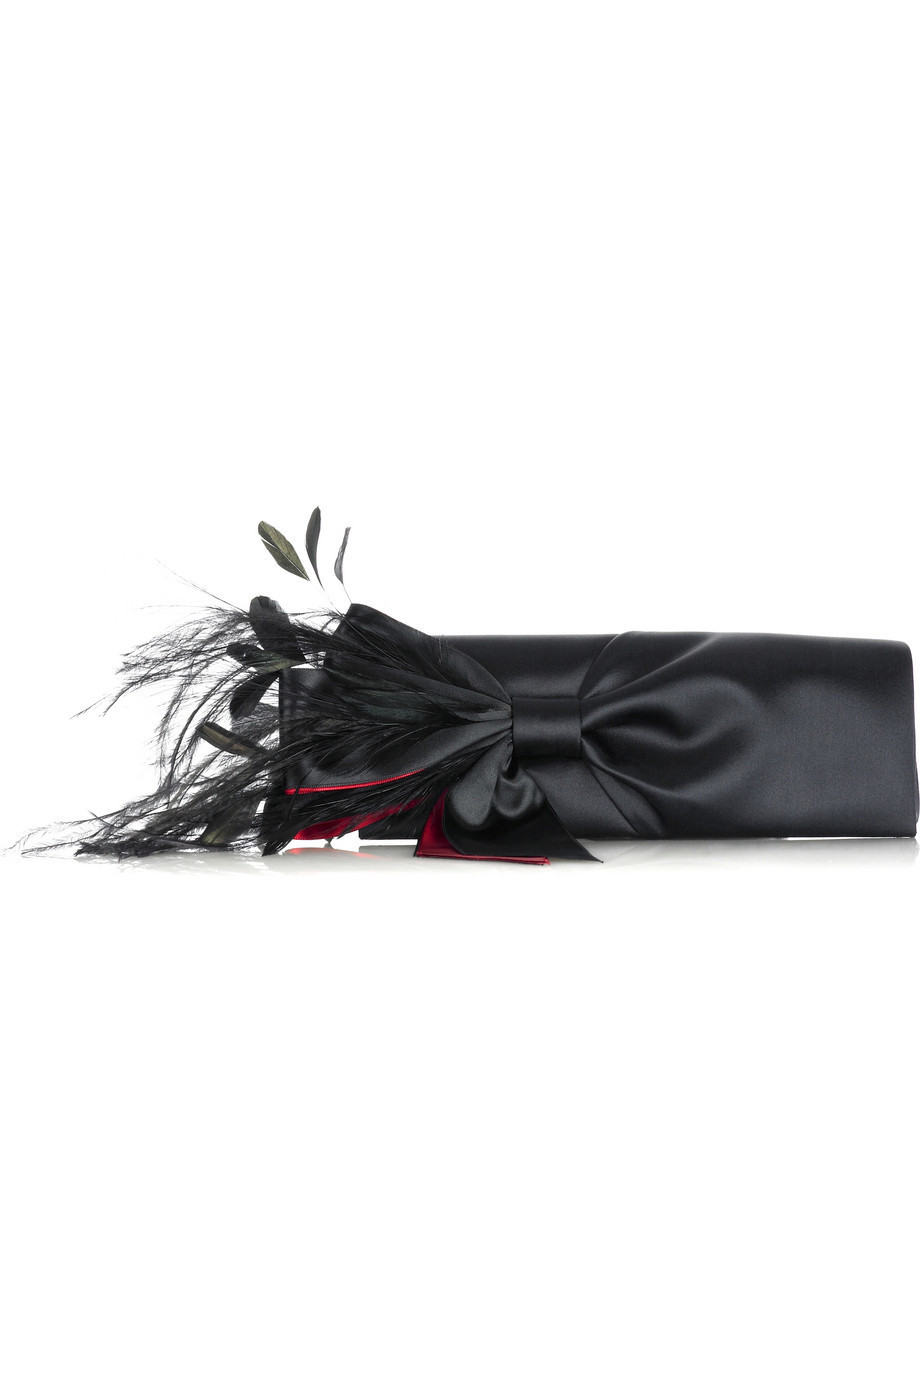 Christian Louboutin Cancan feather clutch  | NET-A-PORTER.COM from net-a-porter.com